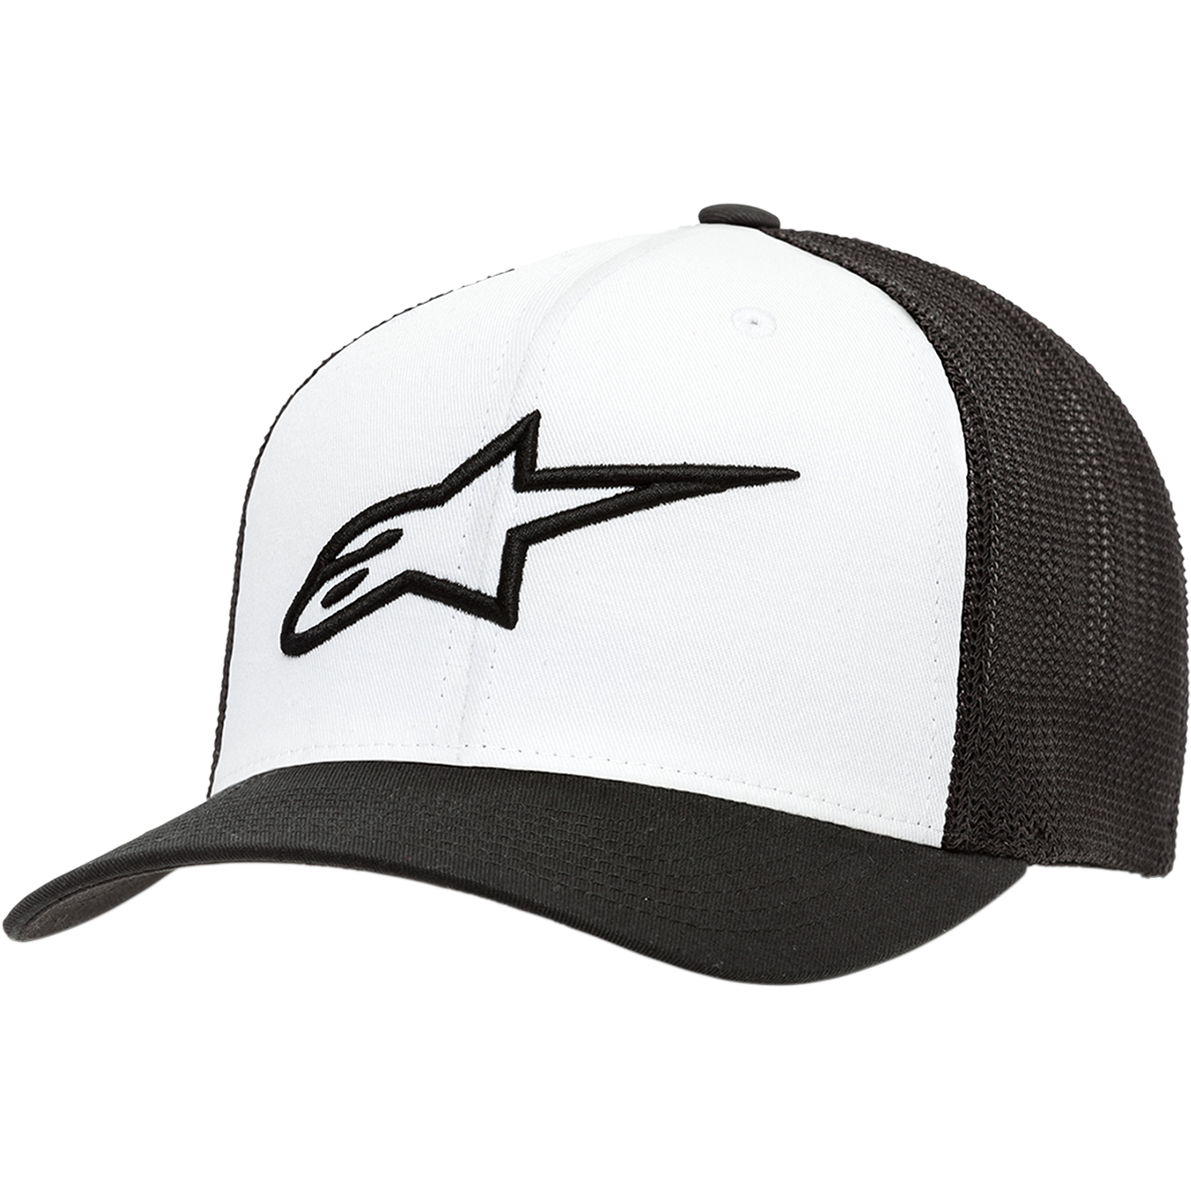 Women's Ageless Trucker Hat